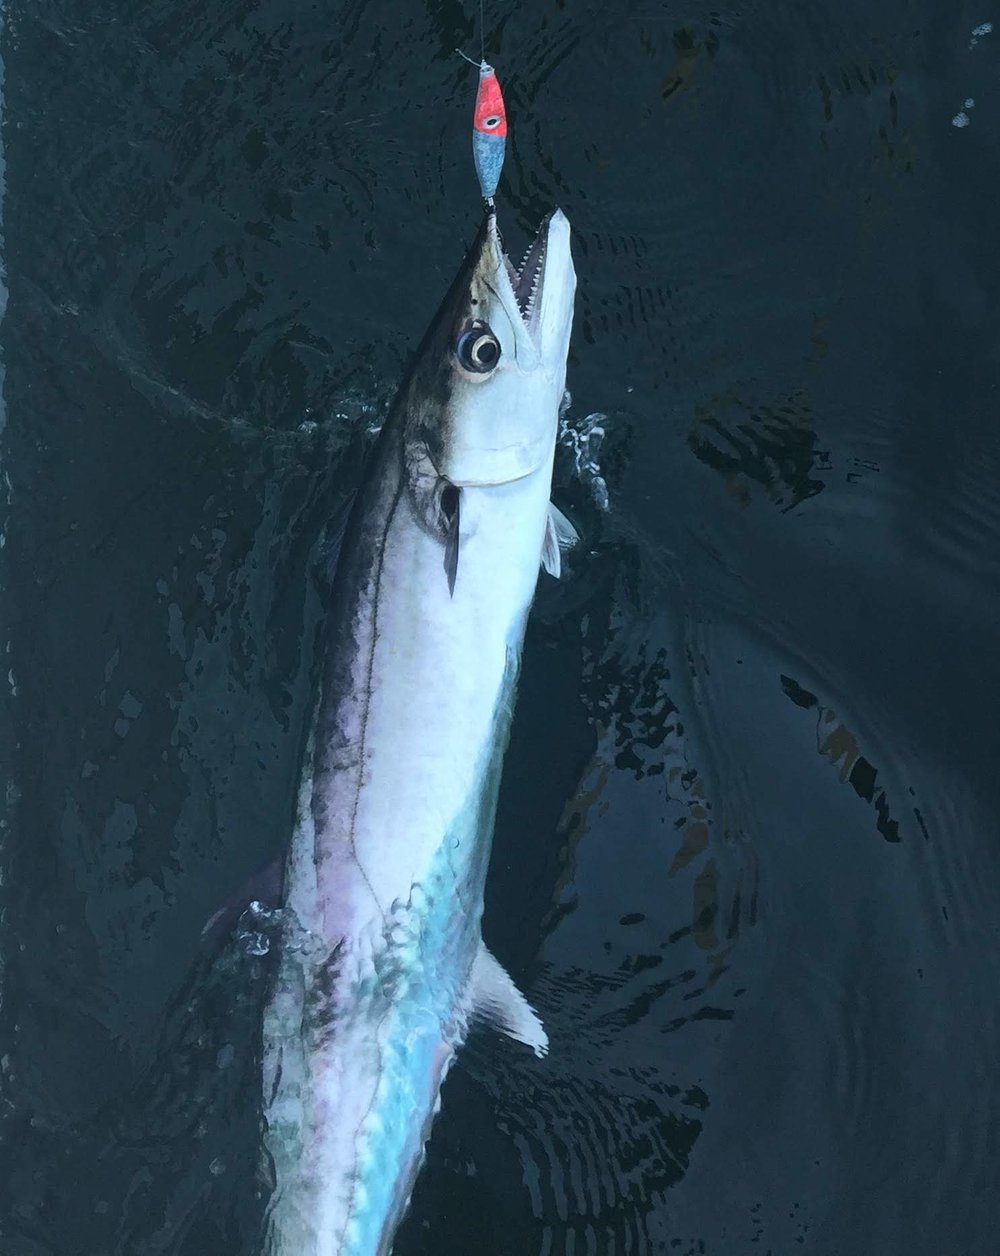 King Mackerel 3 oz Fluorescent Pink Glow. RHB